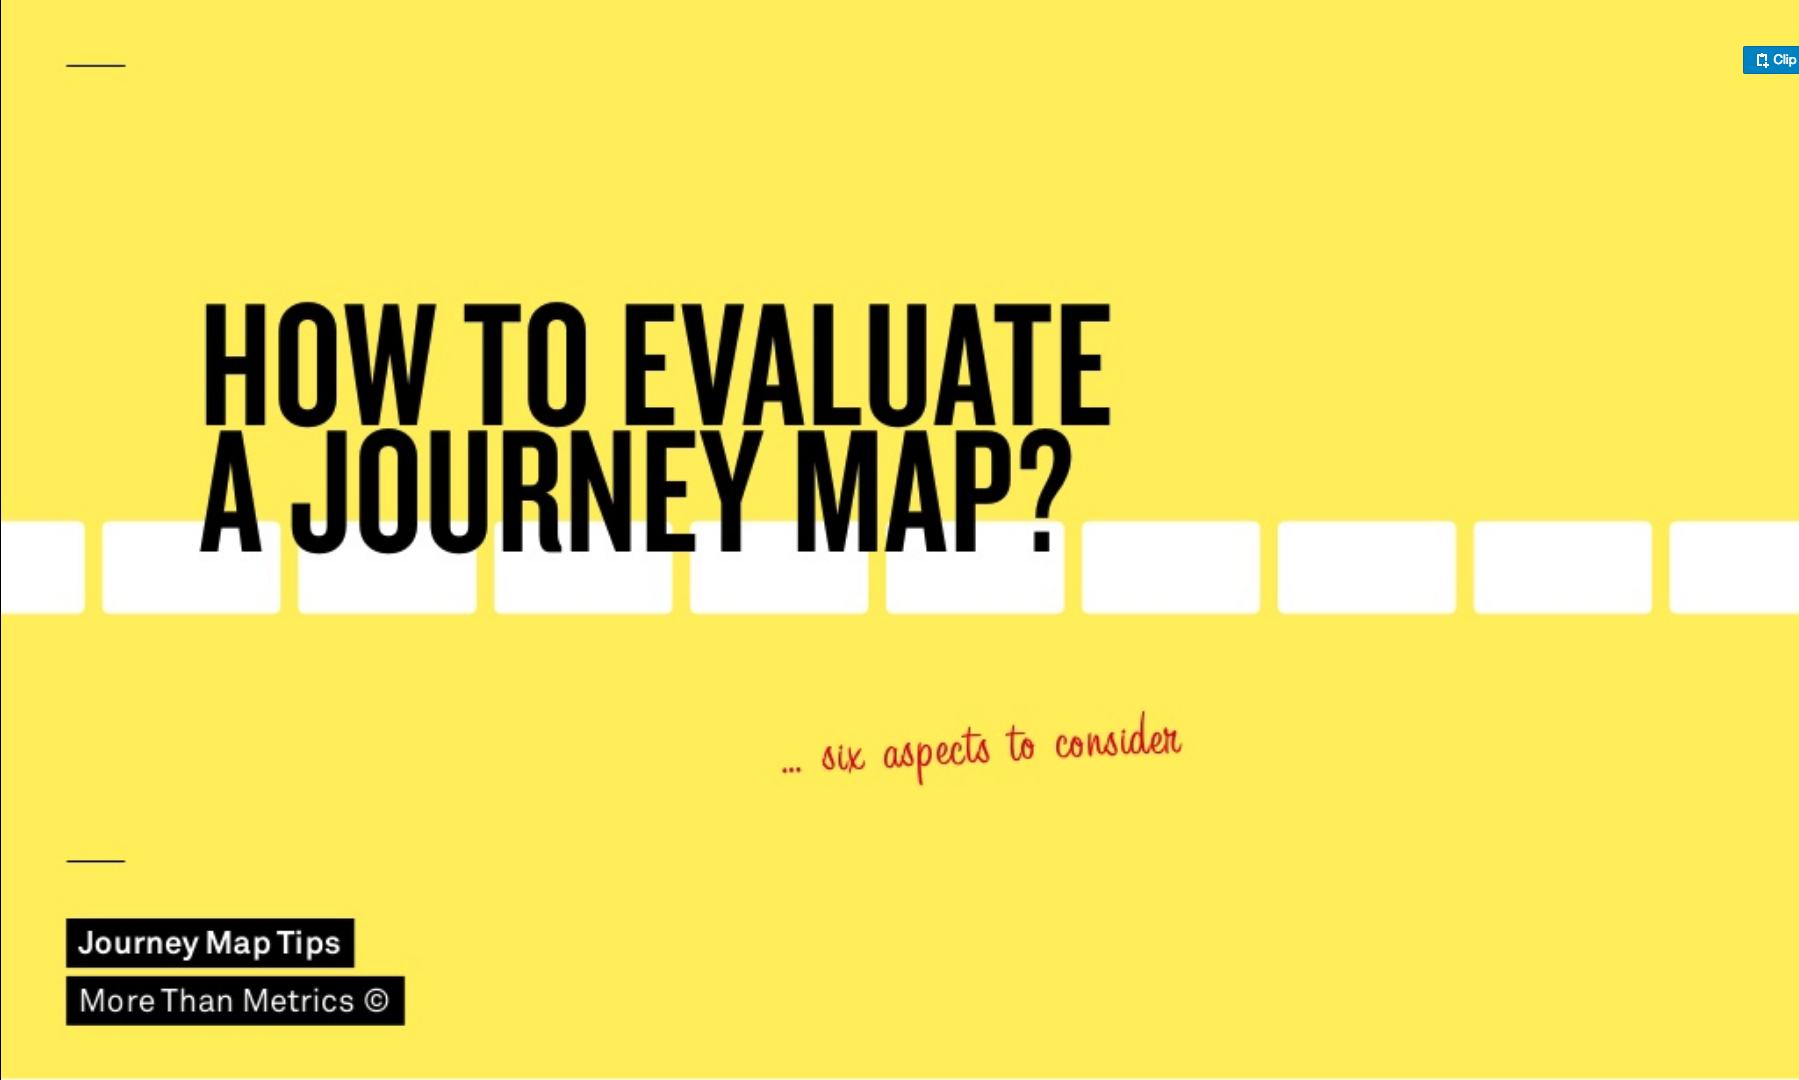 yellow background with writing: how to evaluate a journey map? ...6 aspects to consider